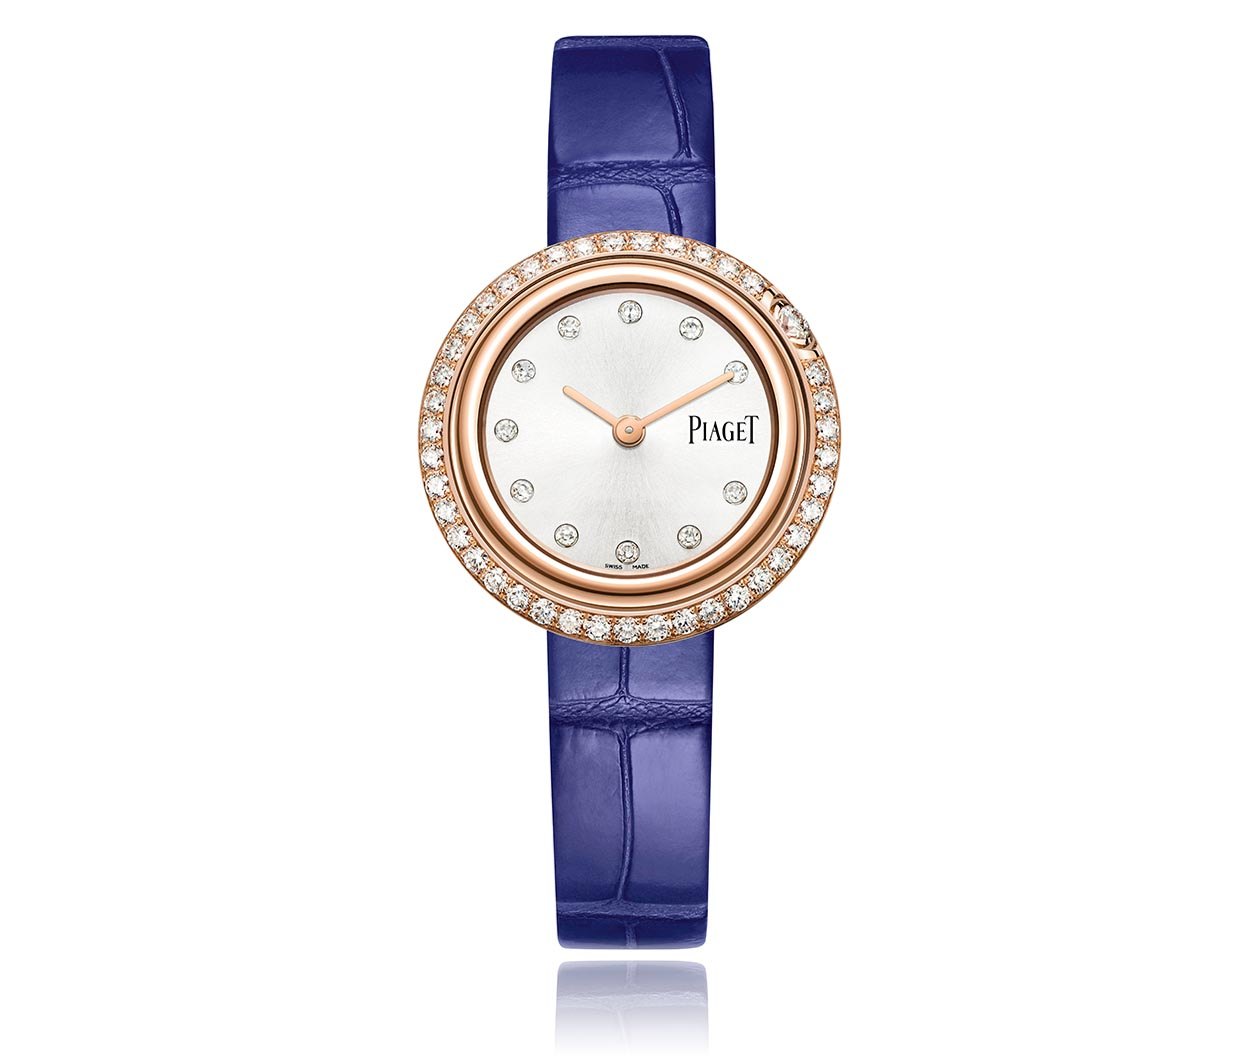 Piaget Possession watch G0A43082 Carousel 1 FINAL